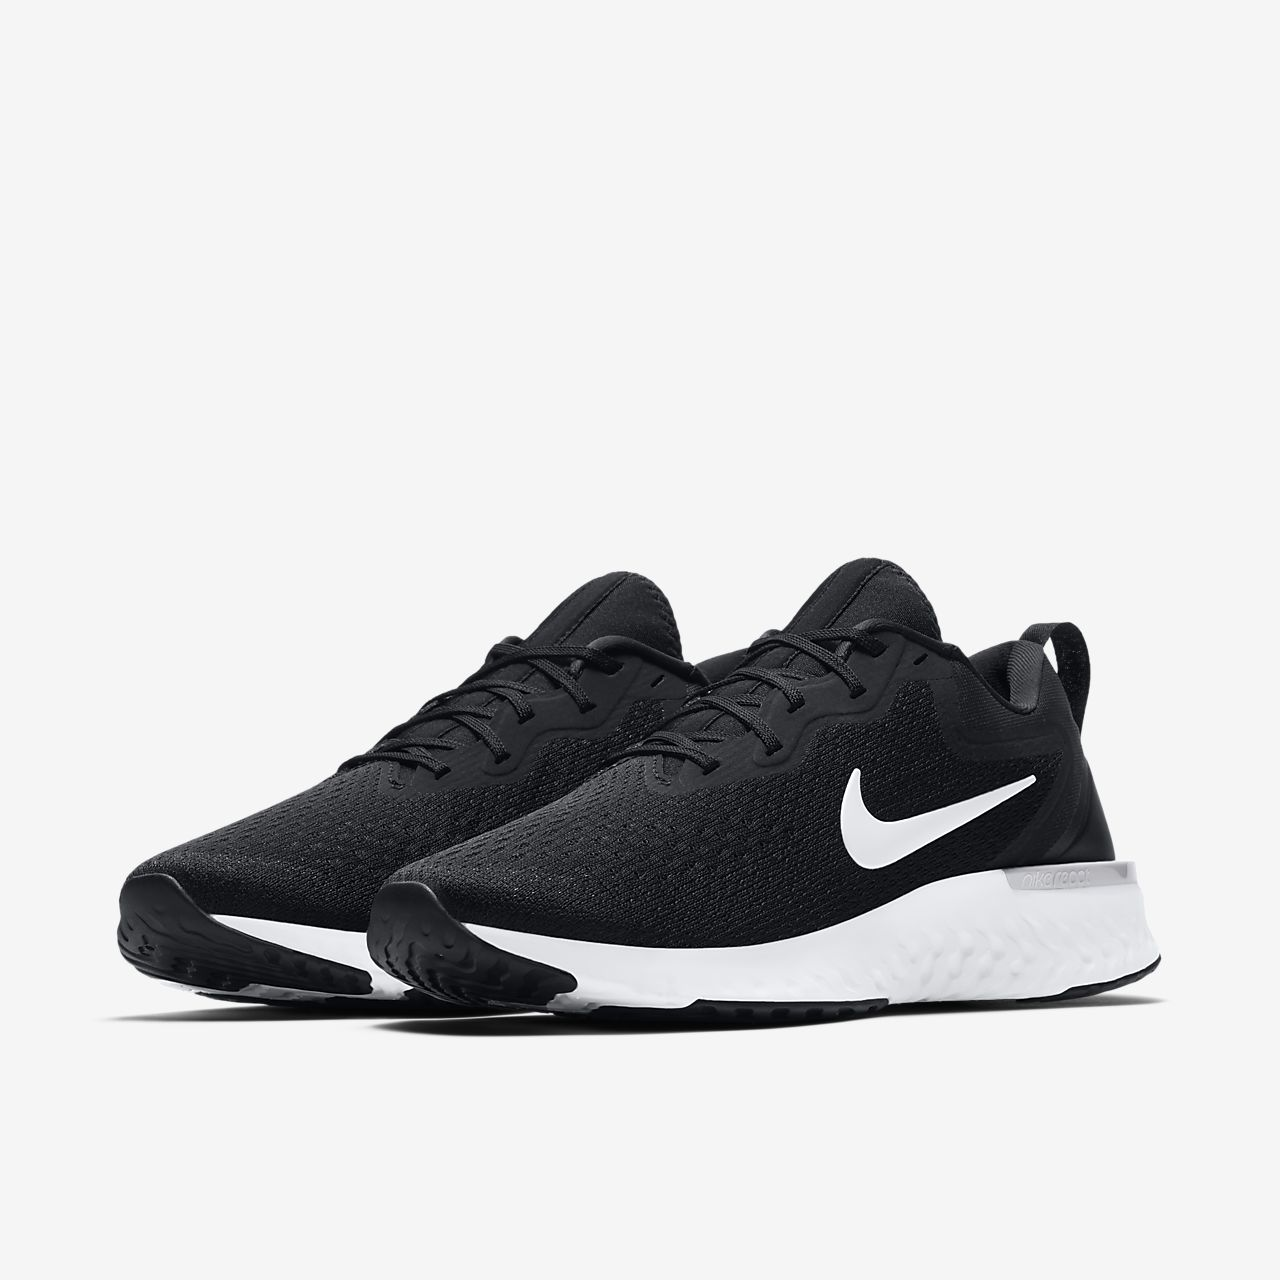 520fb8fdf4de Nike Odyssey React Men s Running Shoe. Nike.com VN